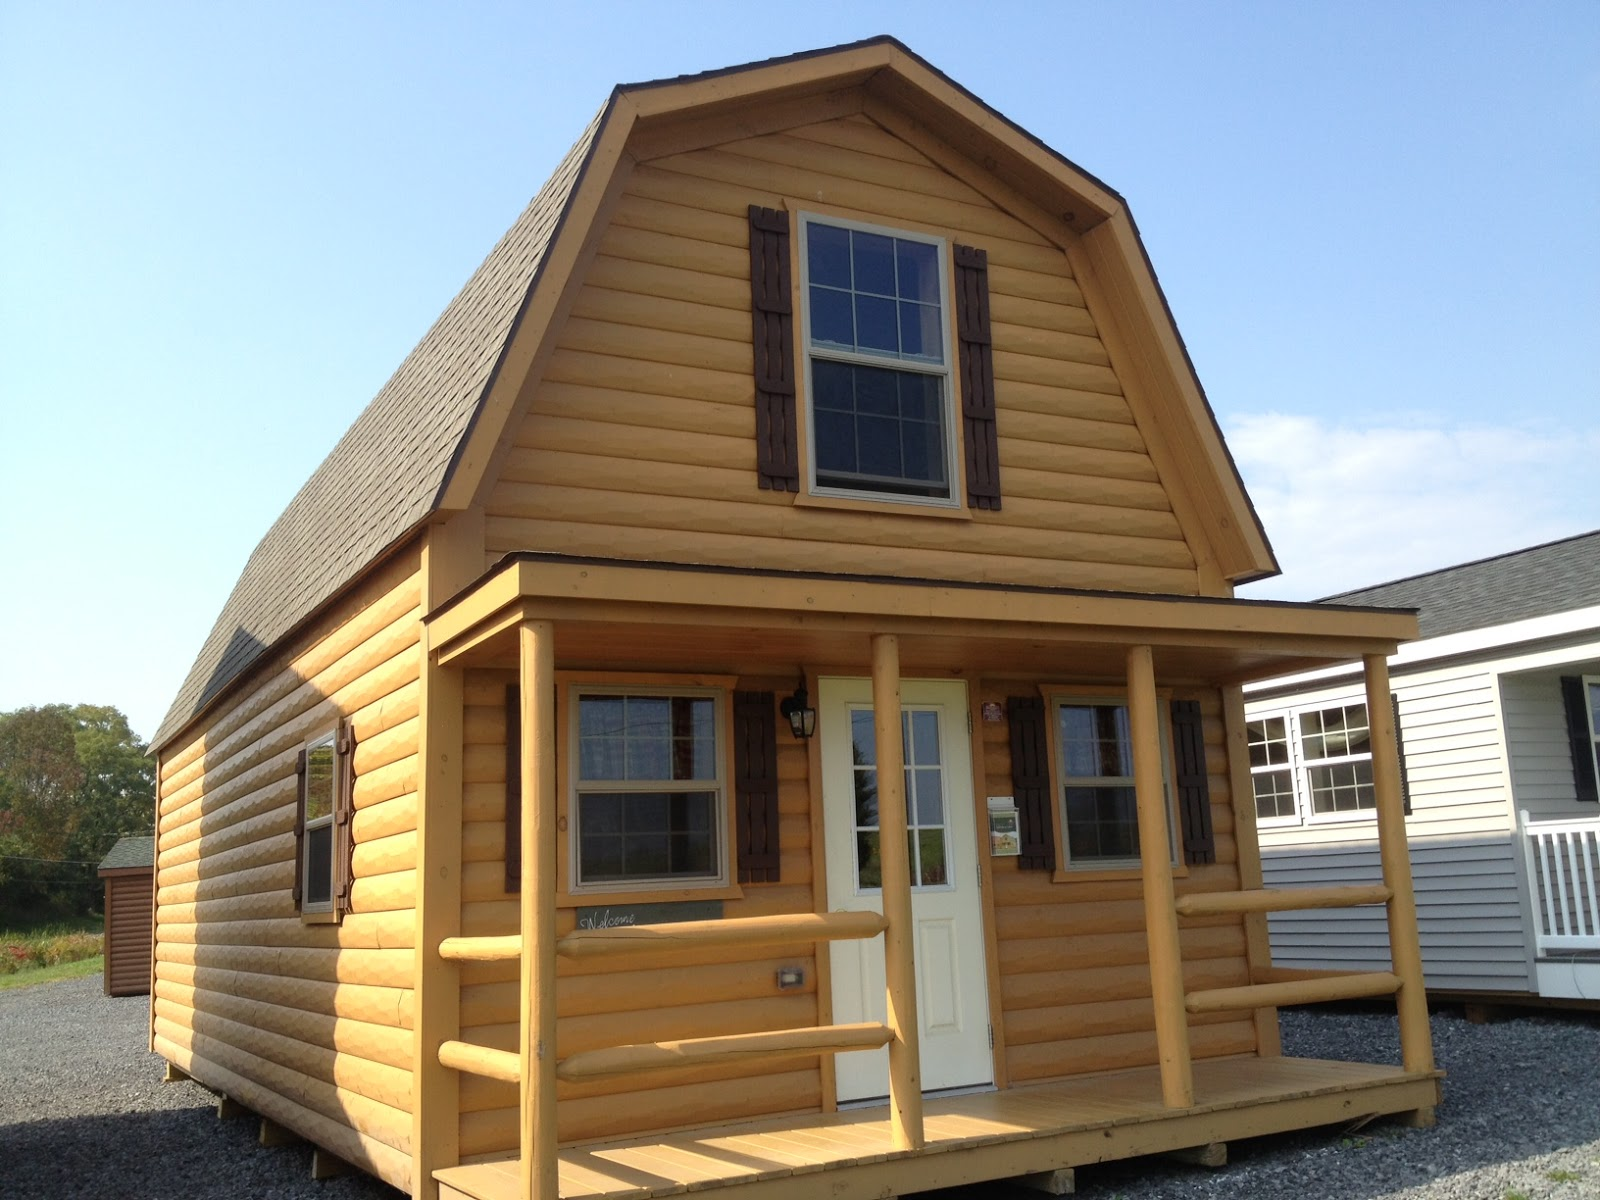 Small Scale Homes: Wood-Tex 768 Square Foot Prefab. Cabin on